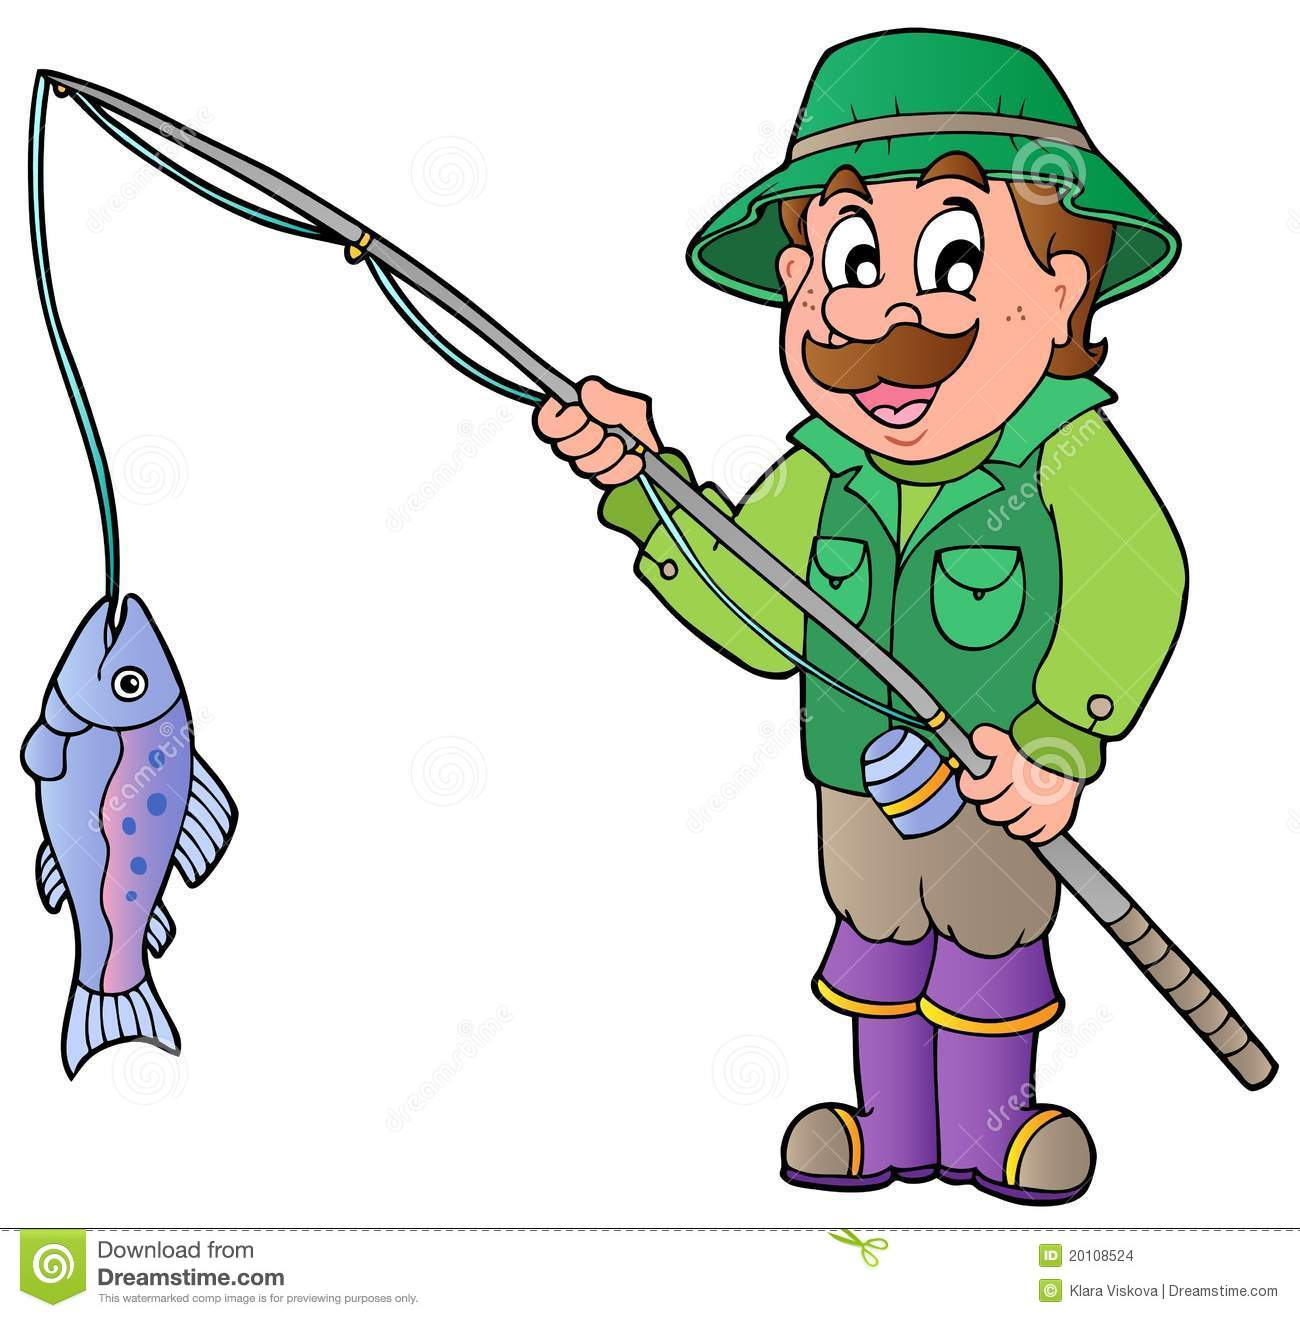 Fish on vacation cartoon stock illustration. Illustration of juice ...